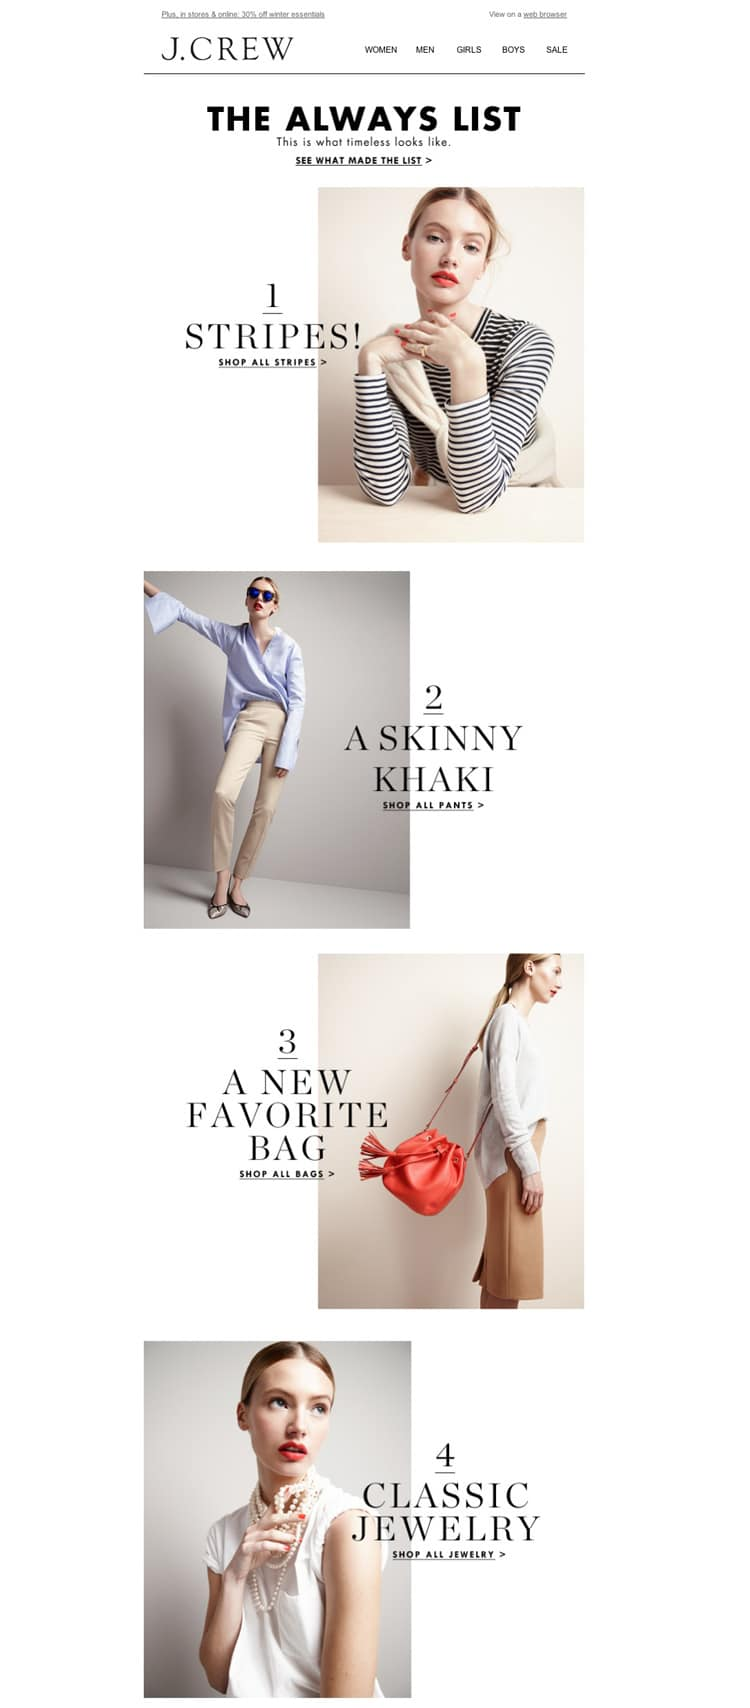 e-newletter email newsletter marketing design layout inspiration j crew j.crew clothing simple minimal stylish fashion